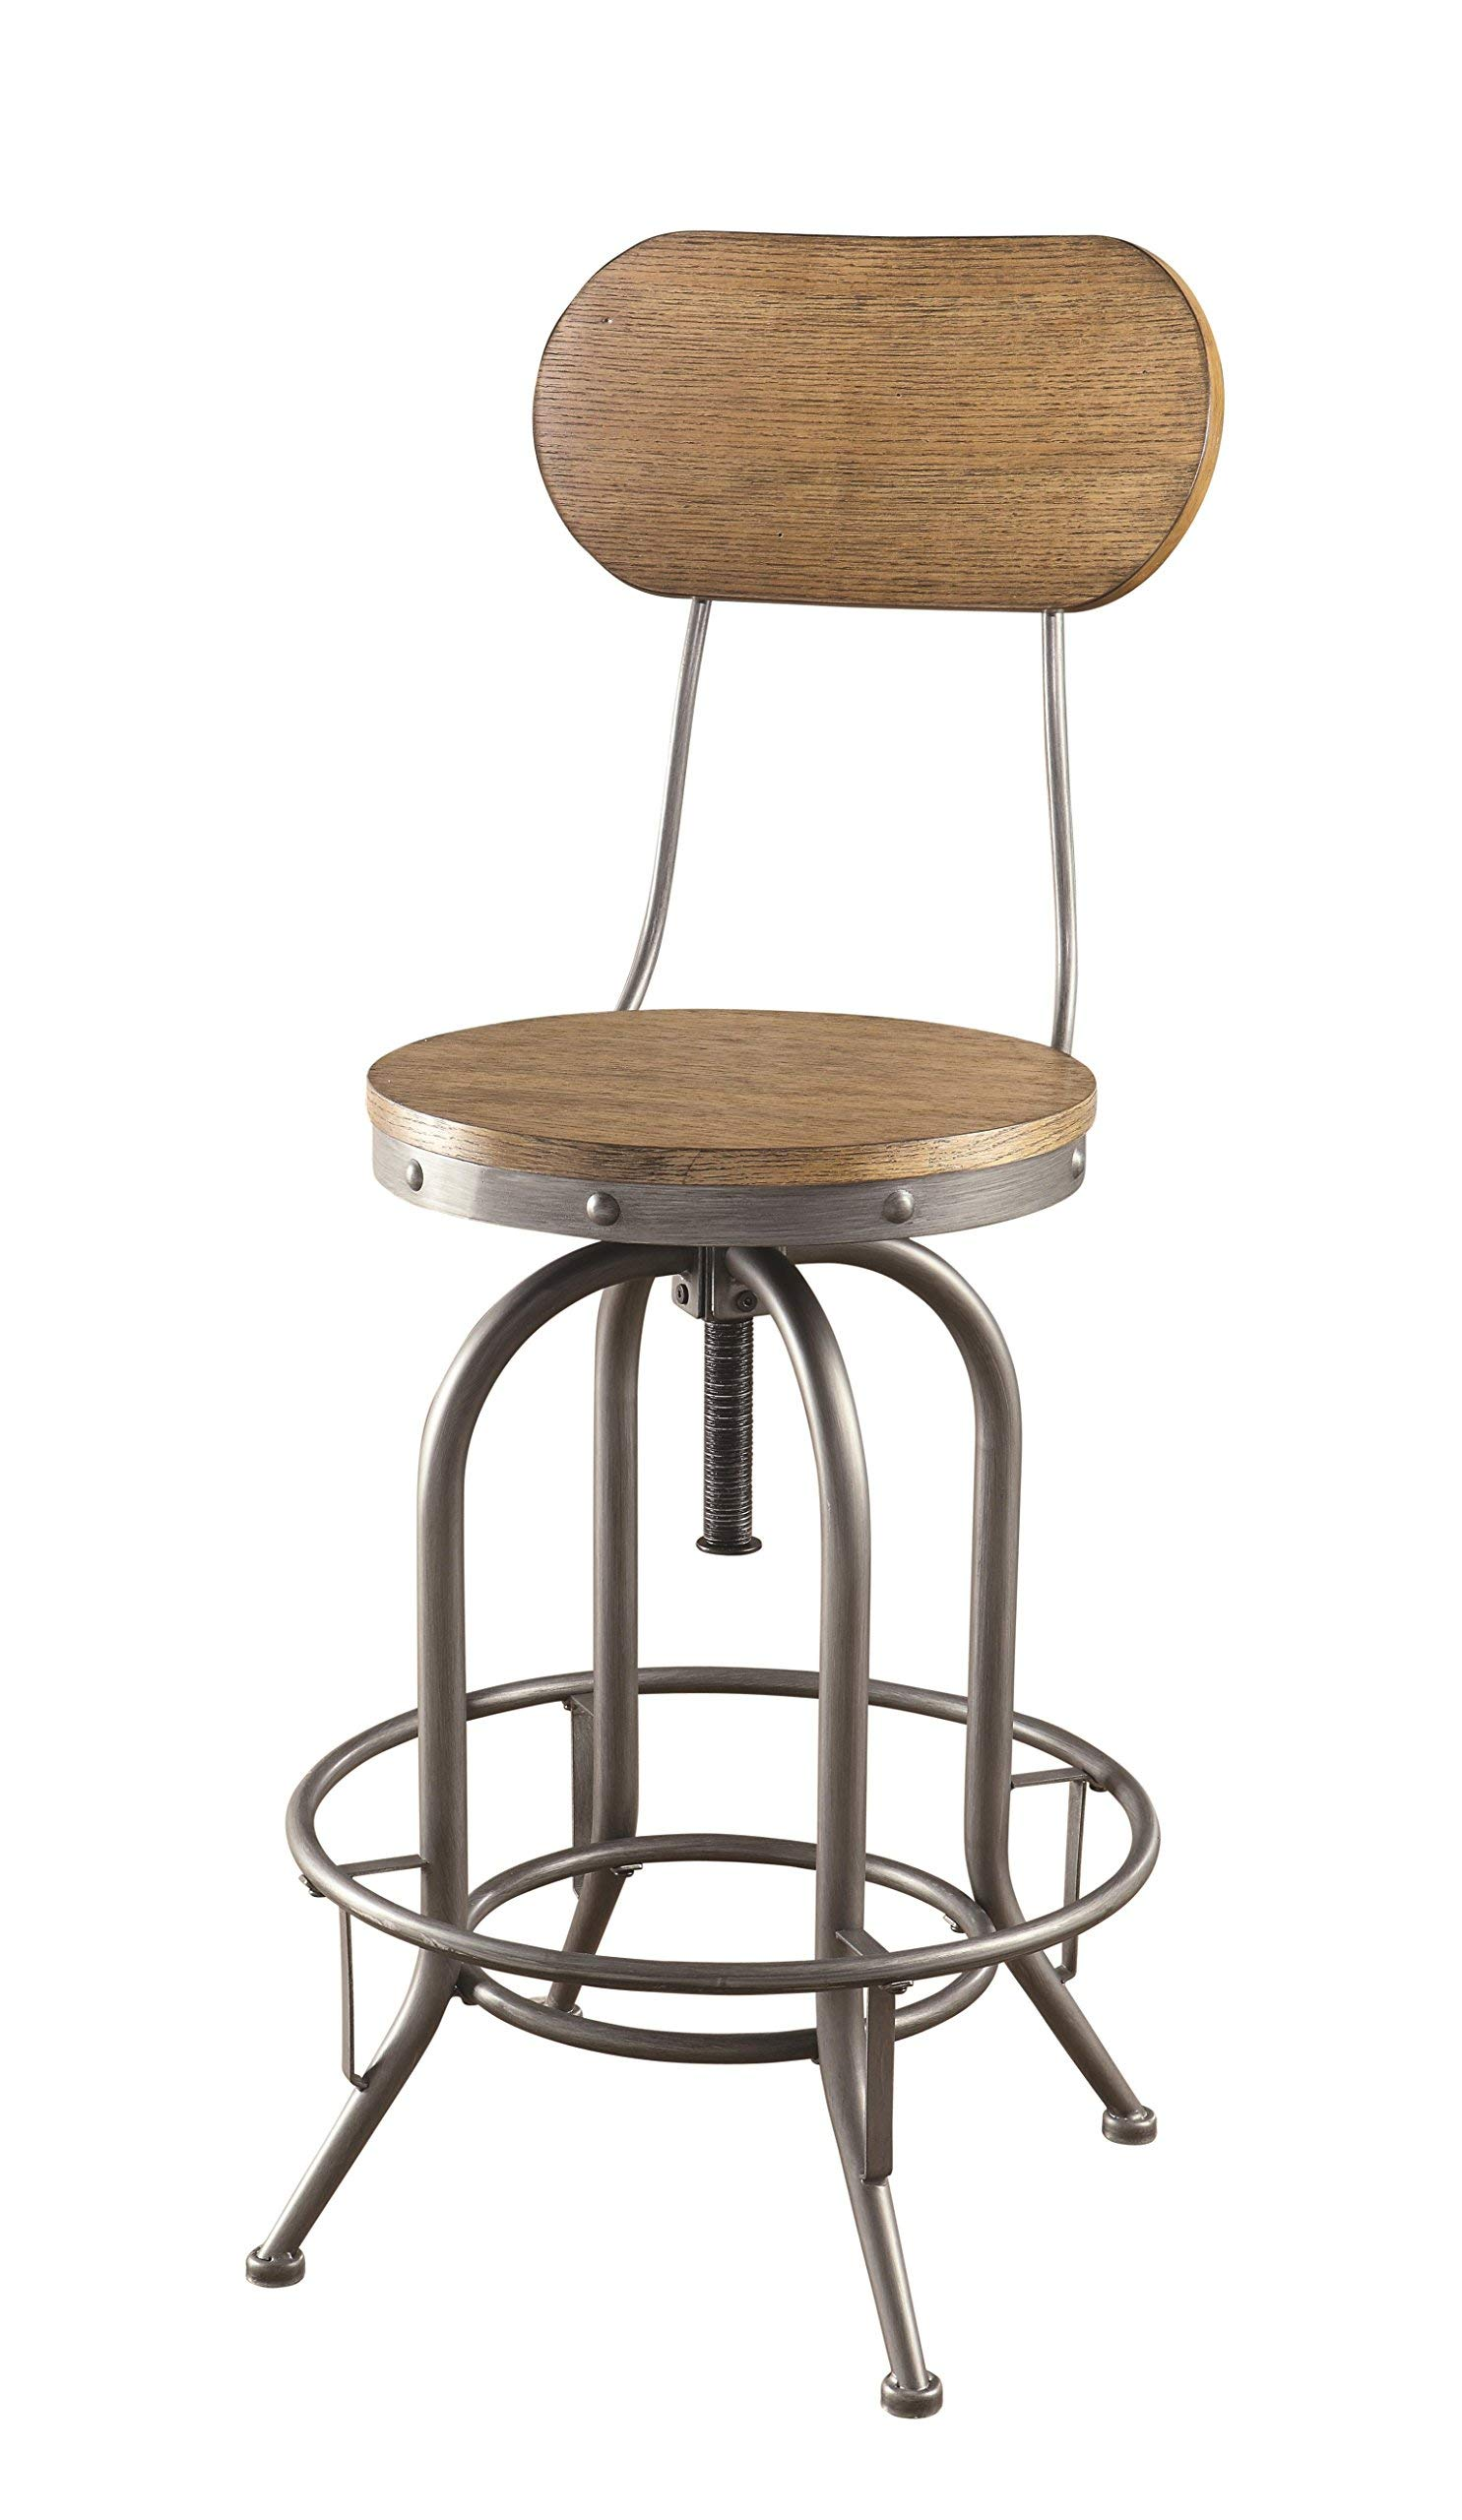 """Coaster Home Furnishings Coaster Industrial Rustic Graphite Adjustable Bar Stool with Wood Back and Seat, 21.25""""W x 46""""H x 21.25""""D, Weathered Oak & Graphite"""